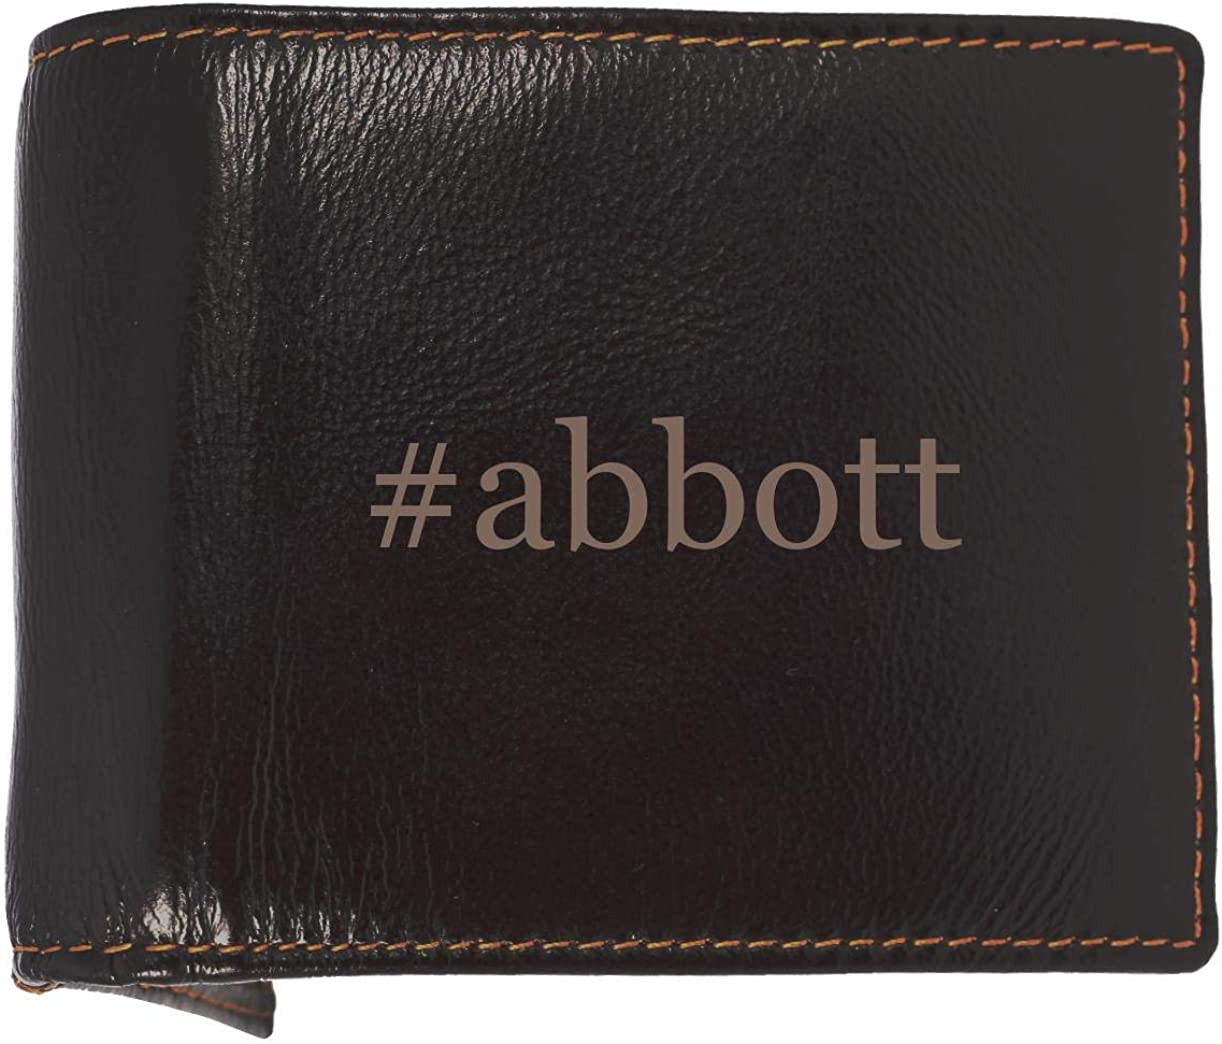 #Abbott - Soft Hashtag Cowhide Genuine Engraved Bifold Leather Wallet